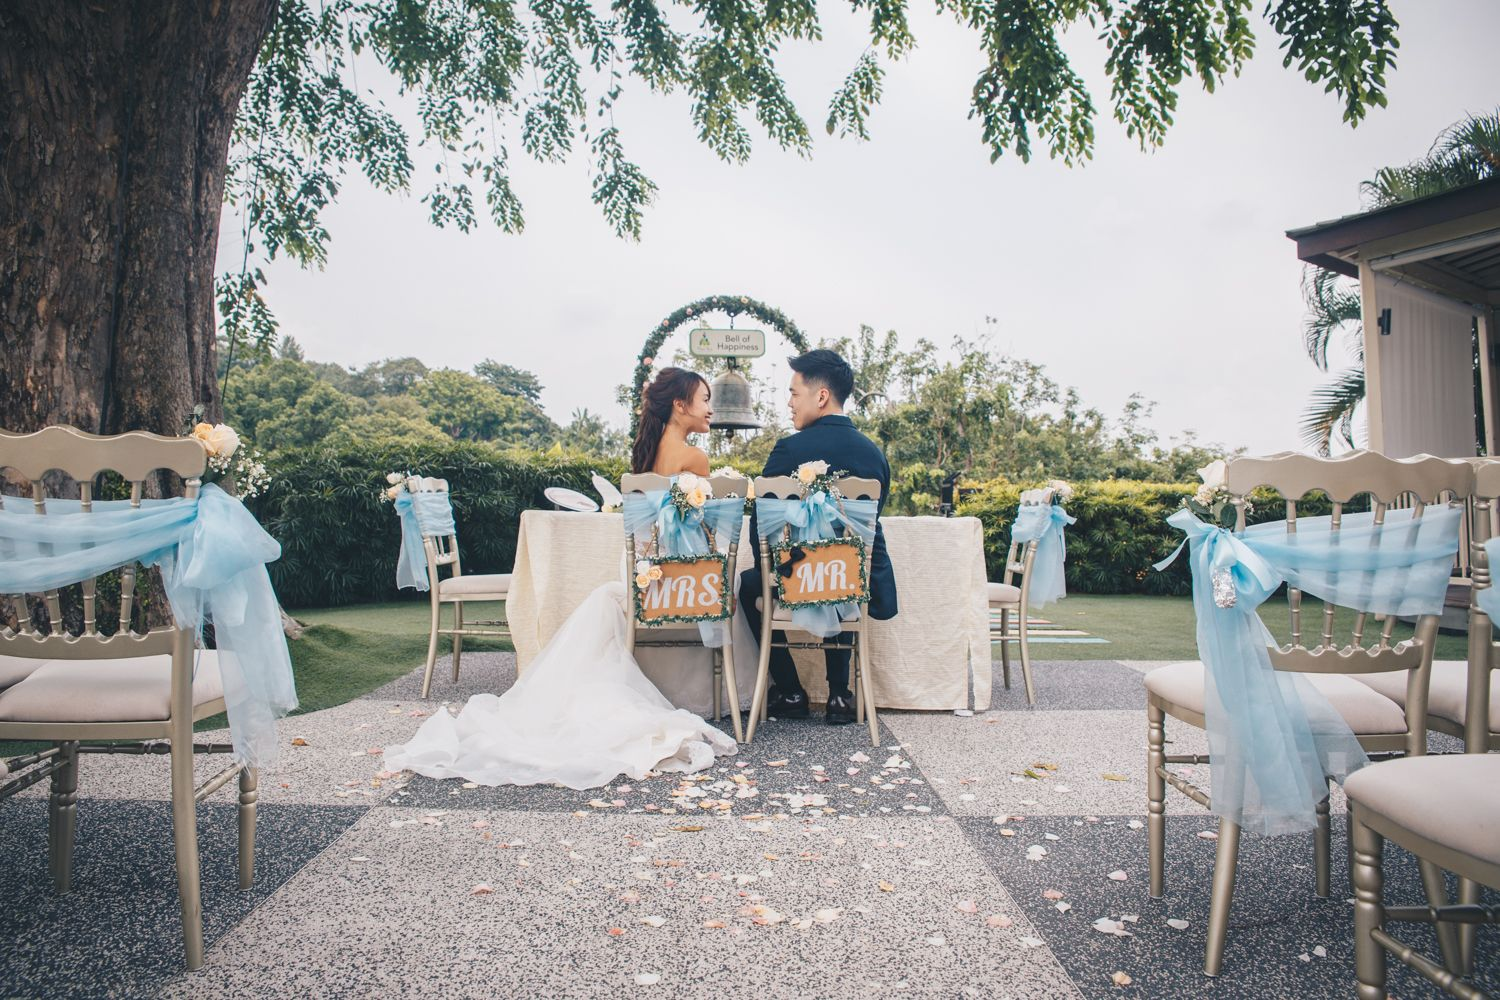 The Most Romantic Garden Wedding Venues in Singapore